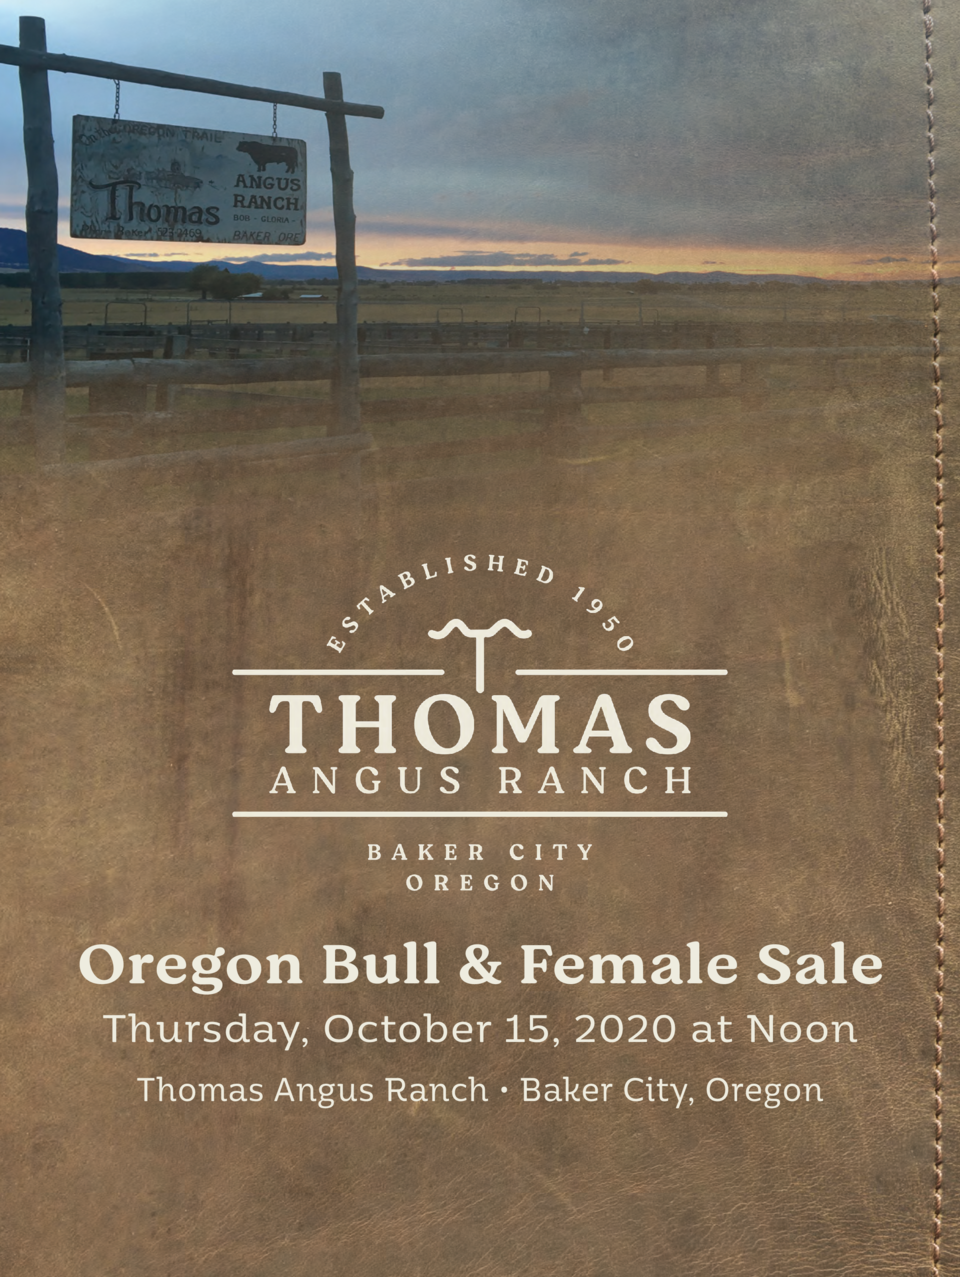 Oregon Bull   Female Sale Thursday, October 15, 2020 at Noon Thomas Angus Ranch     Baker City, Oregon